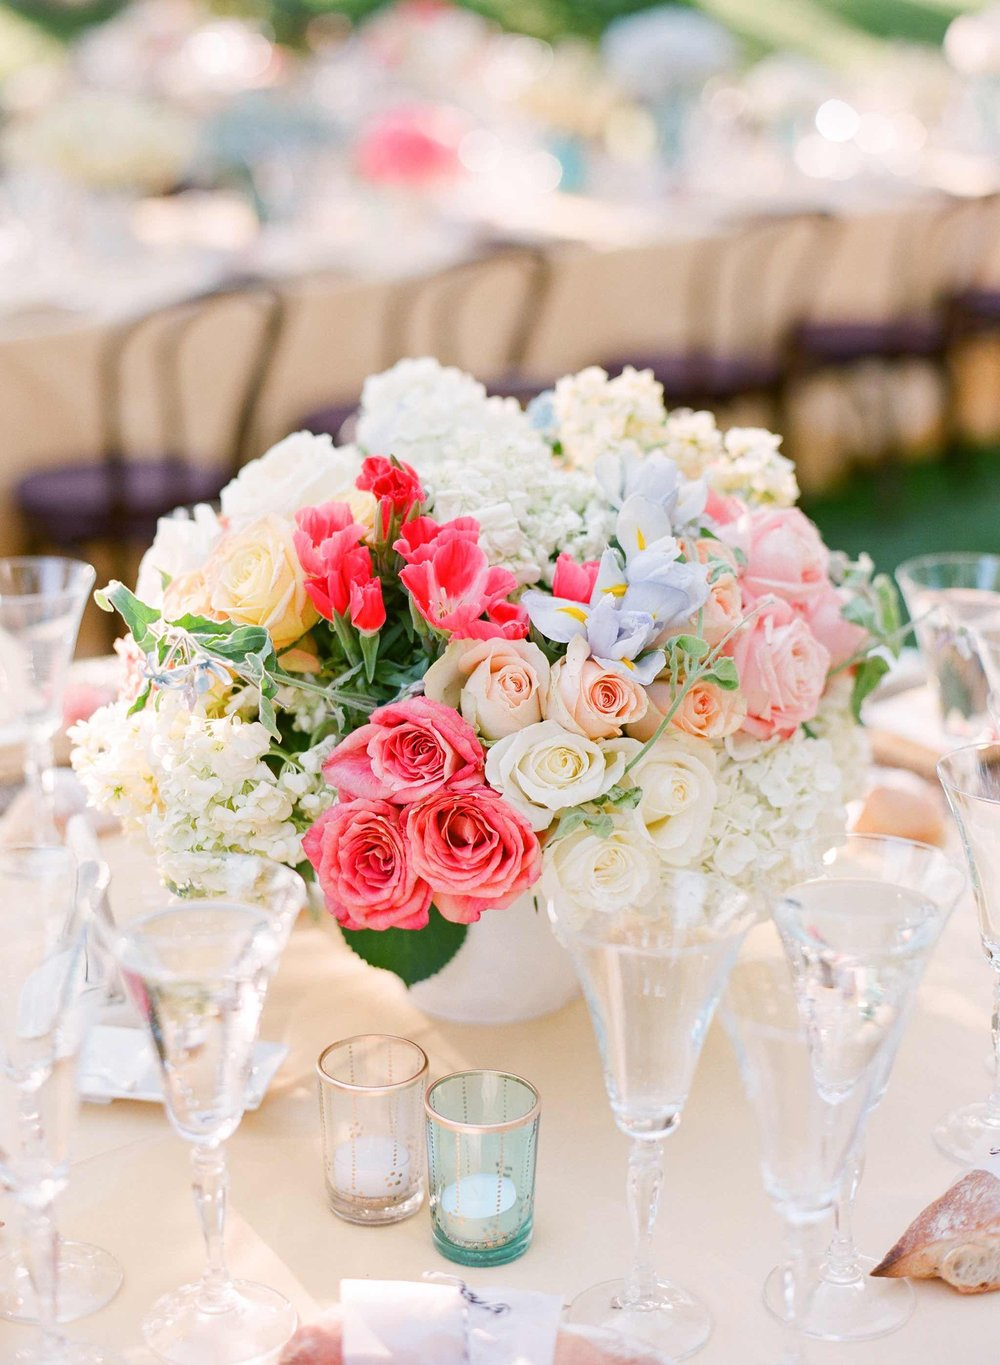 Artistic Wedding Centerpieces